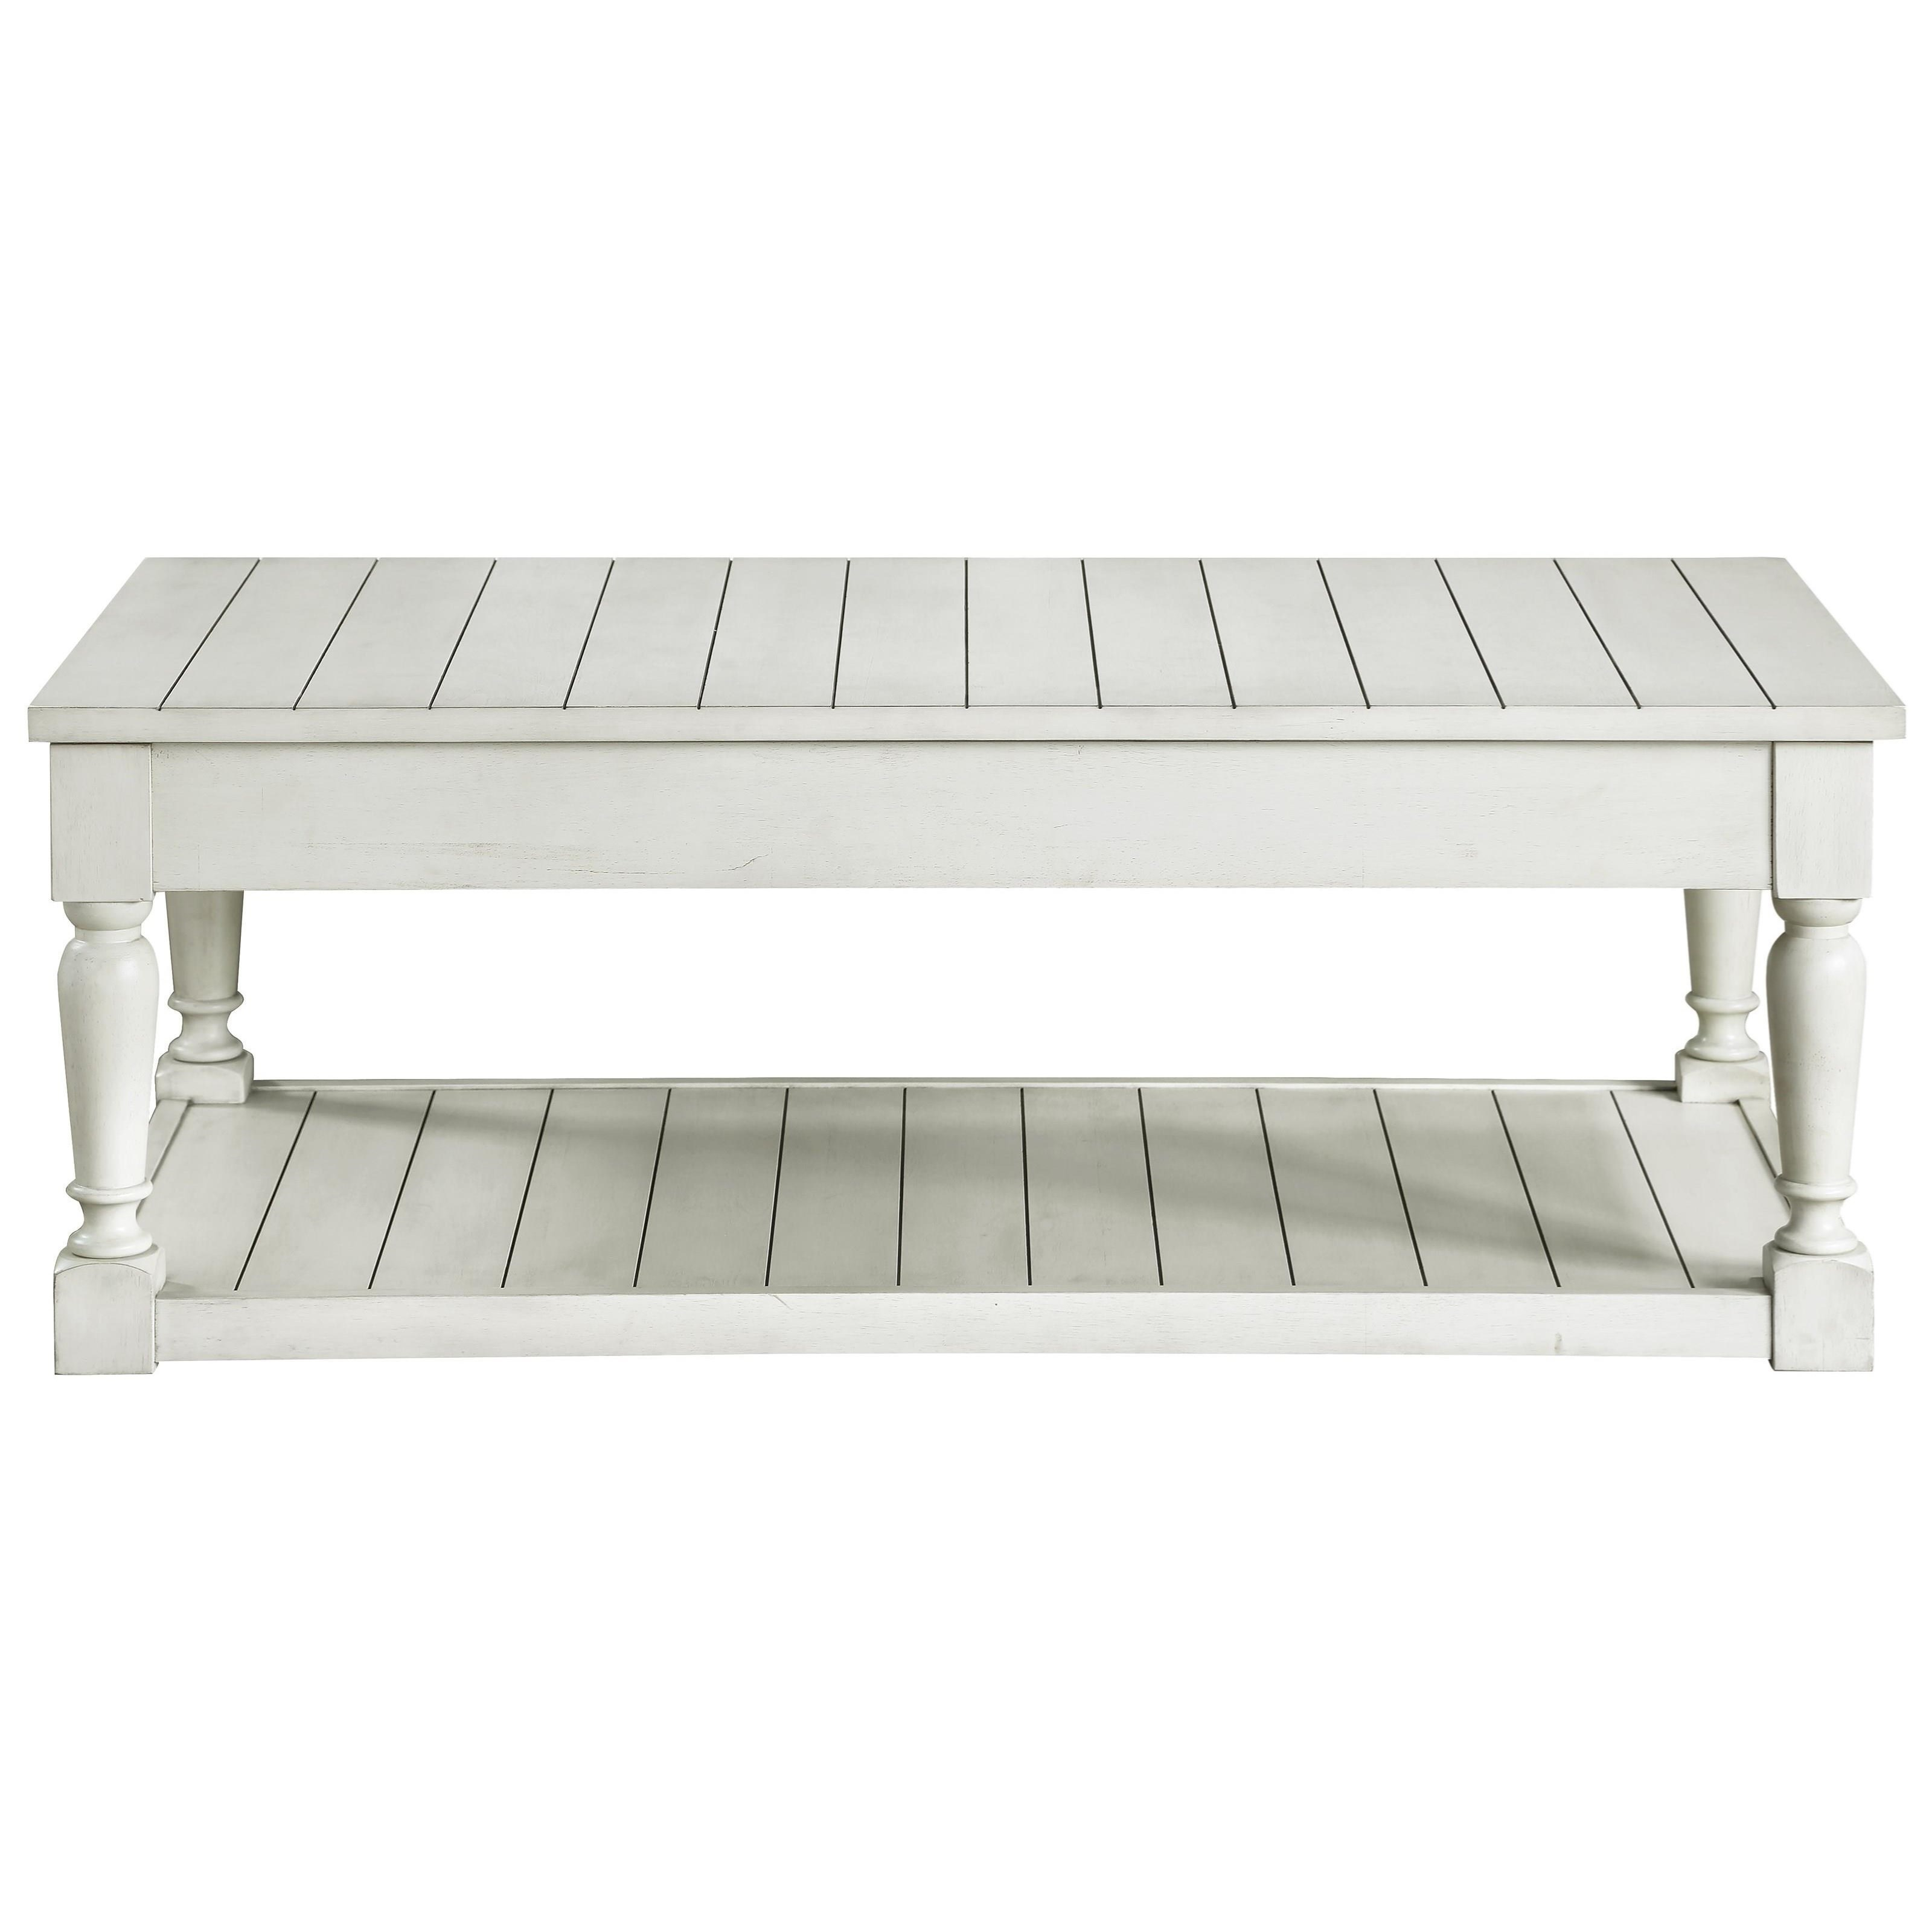 Cottage Coffee Table with Lift-Top Storage